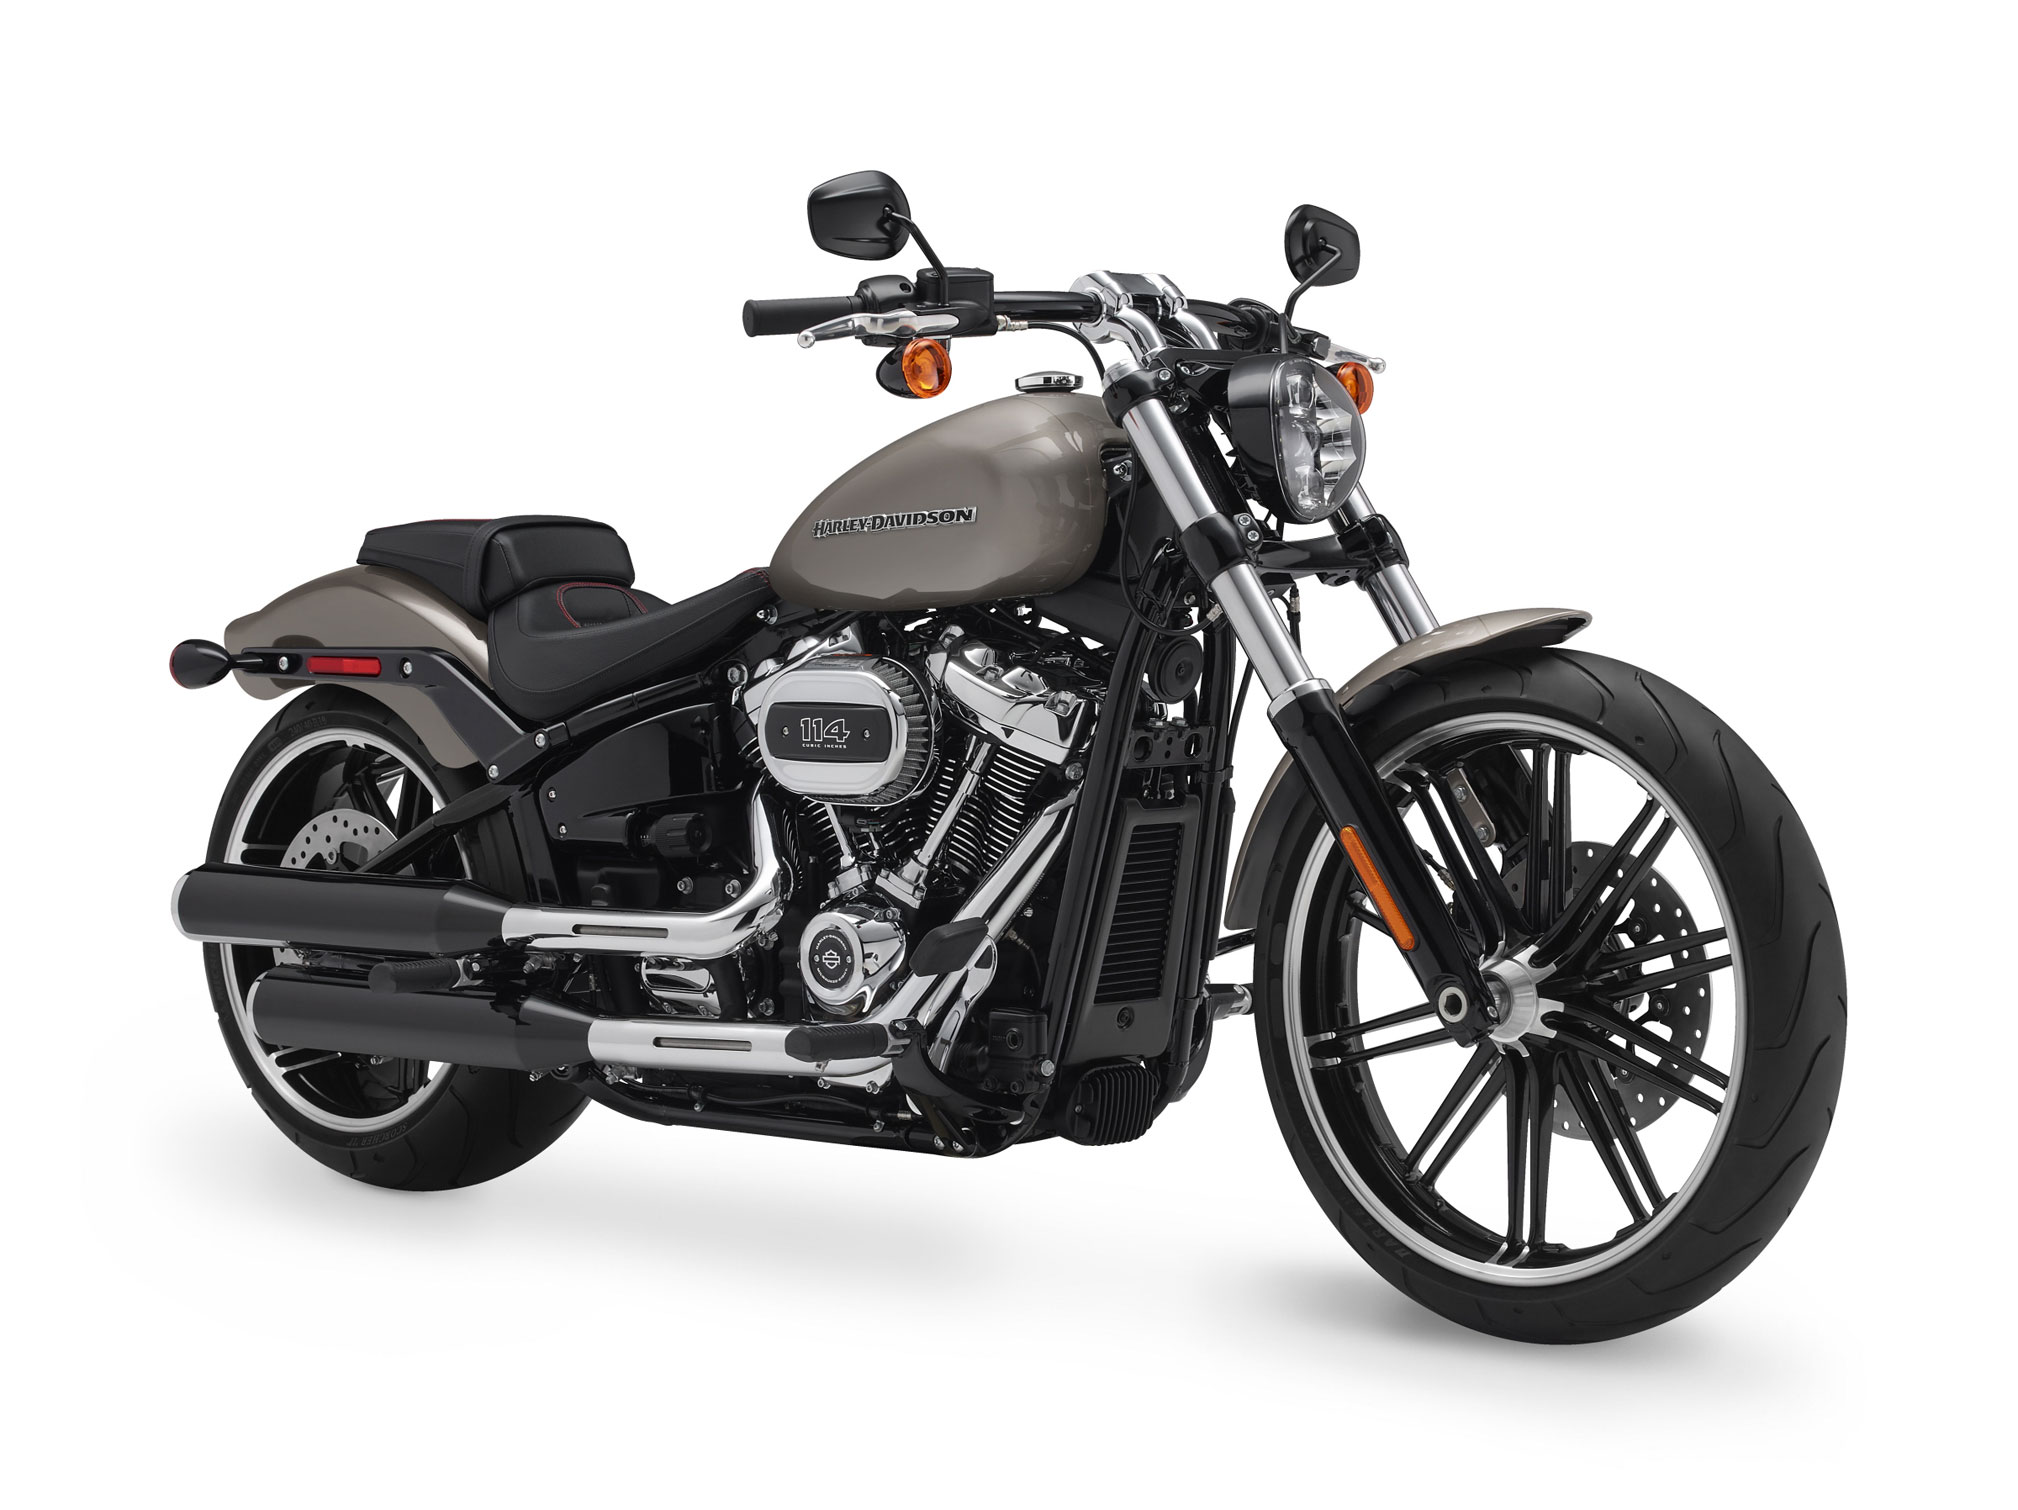 2018 harley davidson breakout 114 review totalmotorcycle. Black Bedroom Furniture Sets. Home Design Ideas